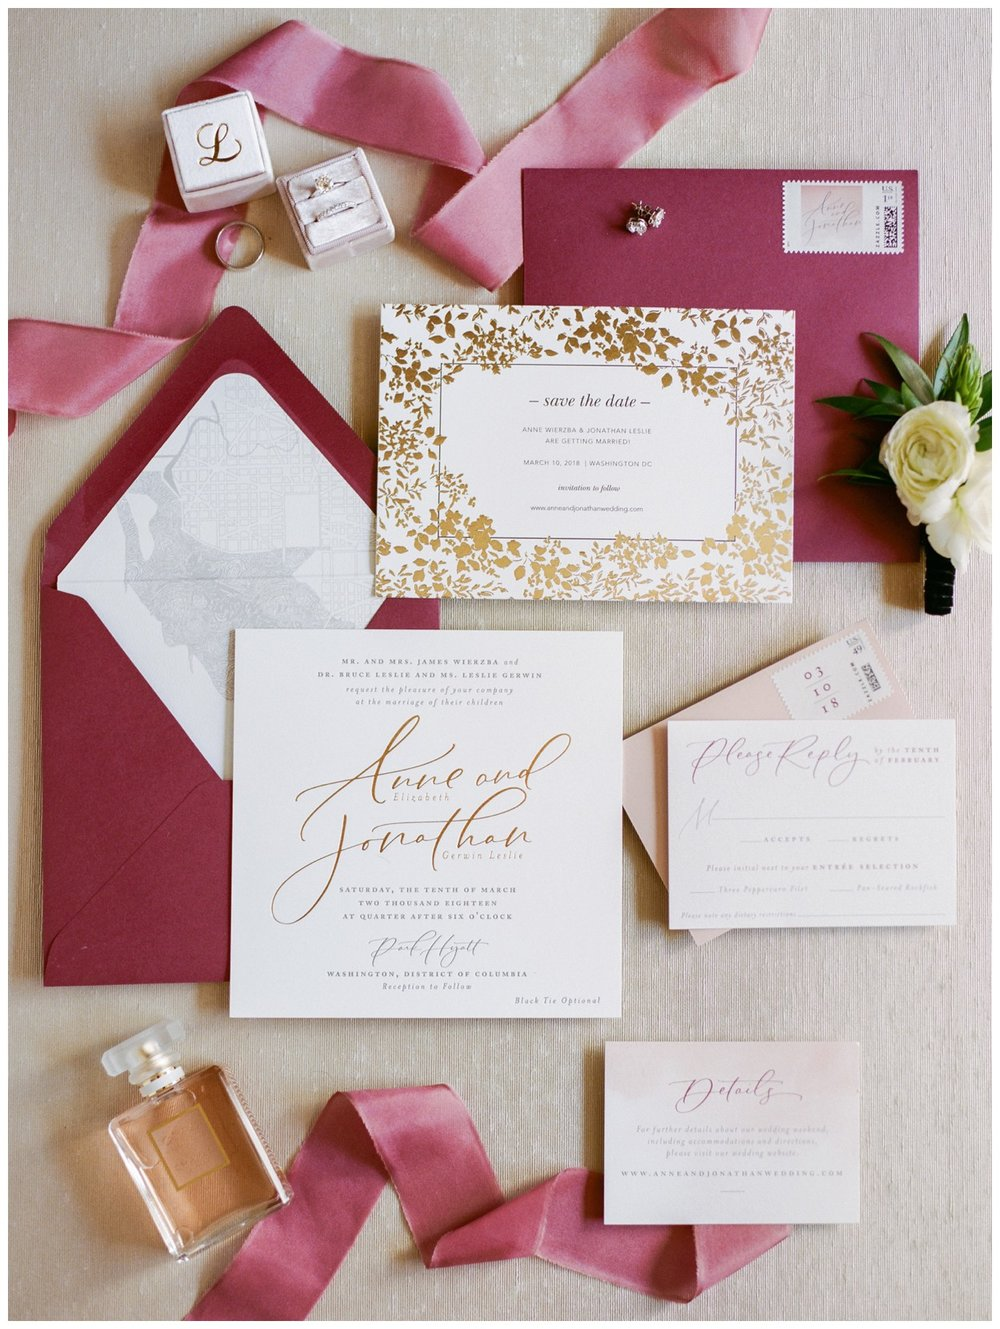 Spring Wedding in Shades of Pink at the Park Hyatt Washington DC by fine art wedding photographer Lissa Ryan Photography invitation suite by Stephanie B Designs